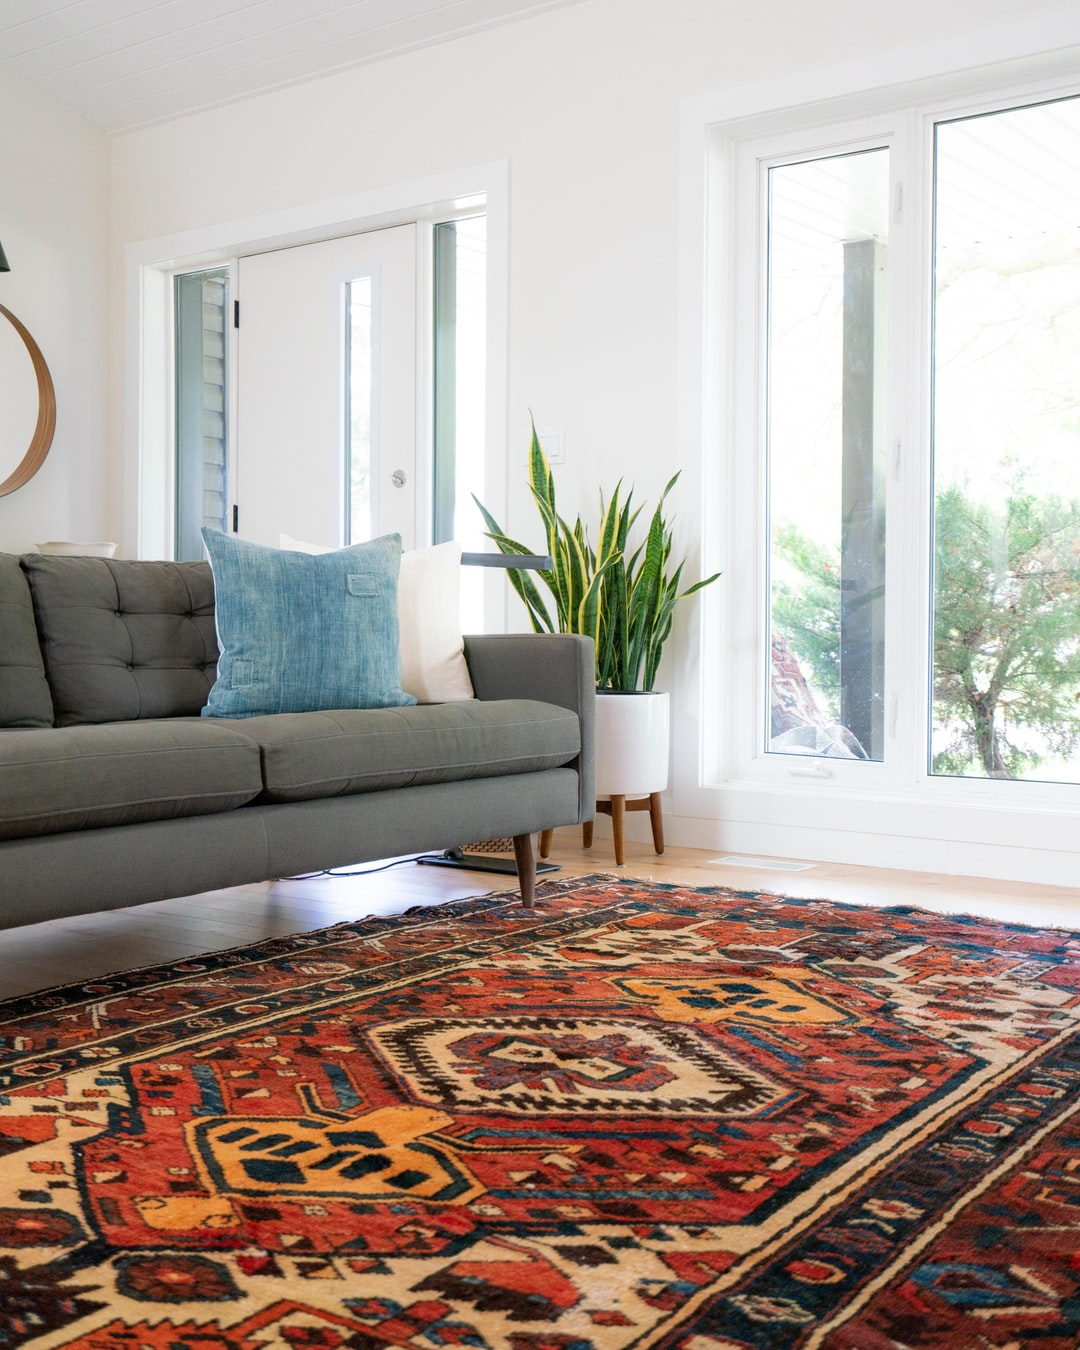 How to Remove Stains From Carpet Like a Pro